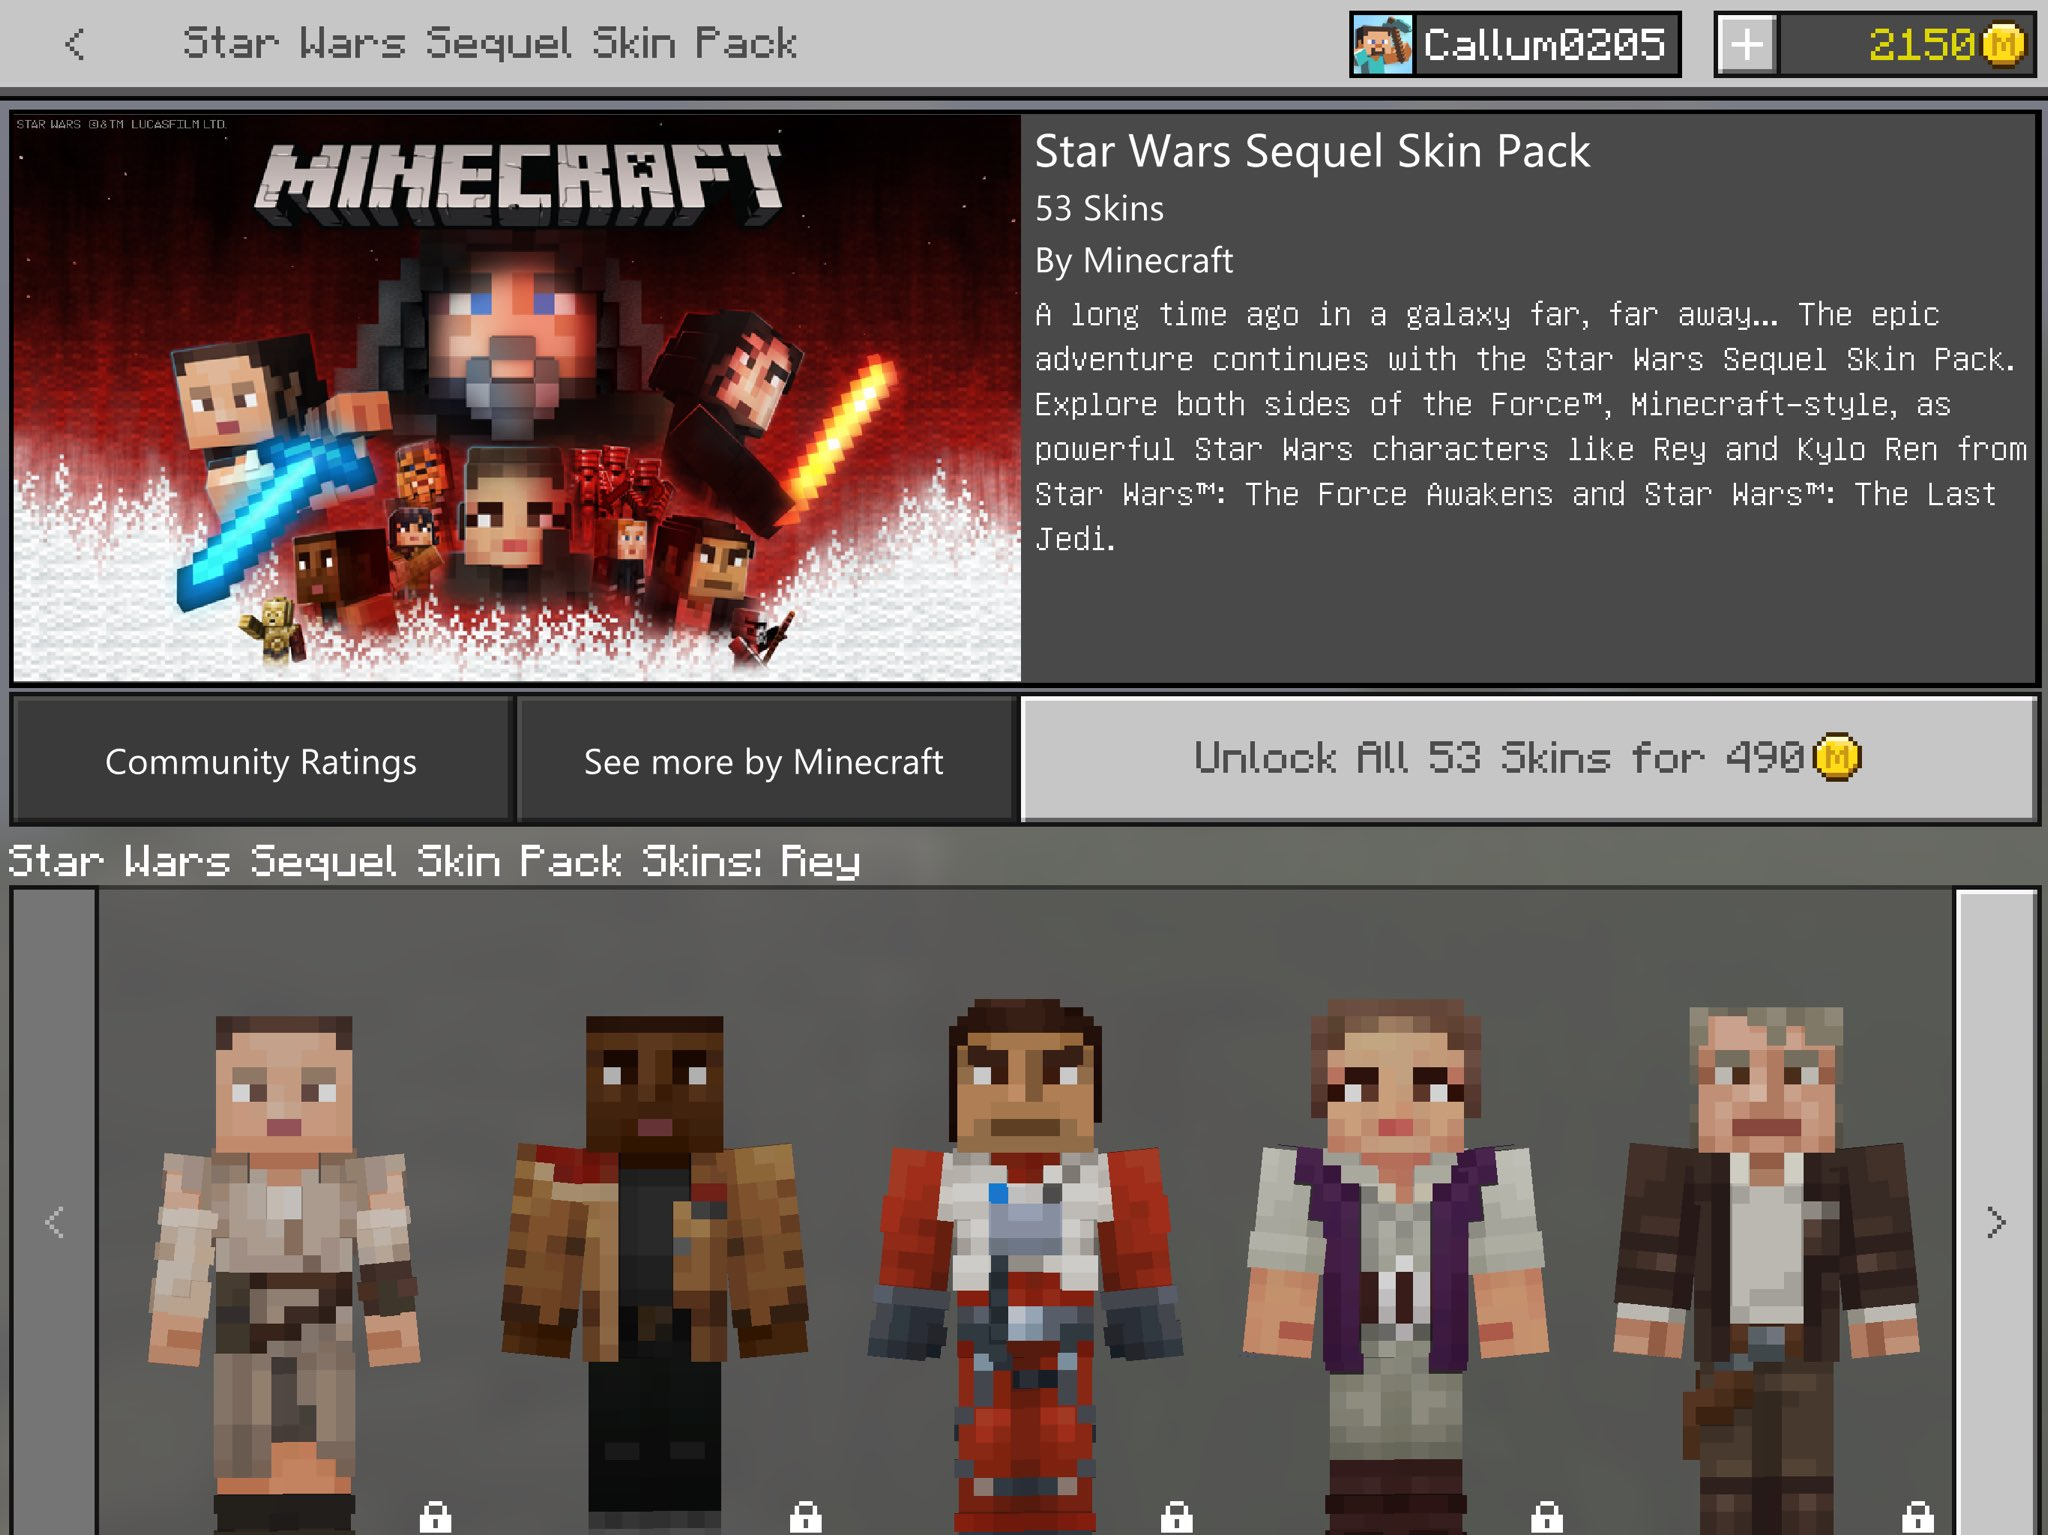 MCPE BETA On Twitter The Star Wars Sequel Skin Pack Is Now - Skin para minecraft pe rey